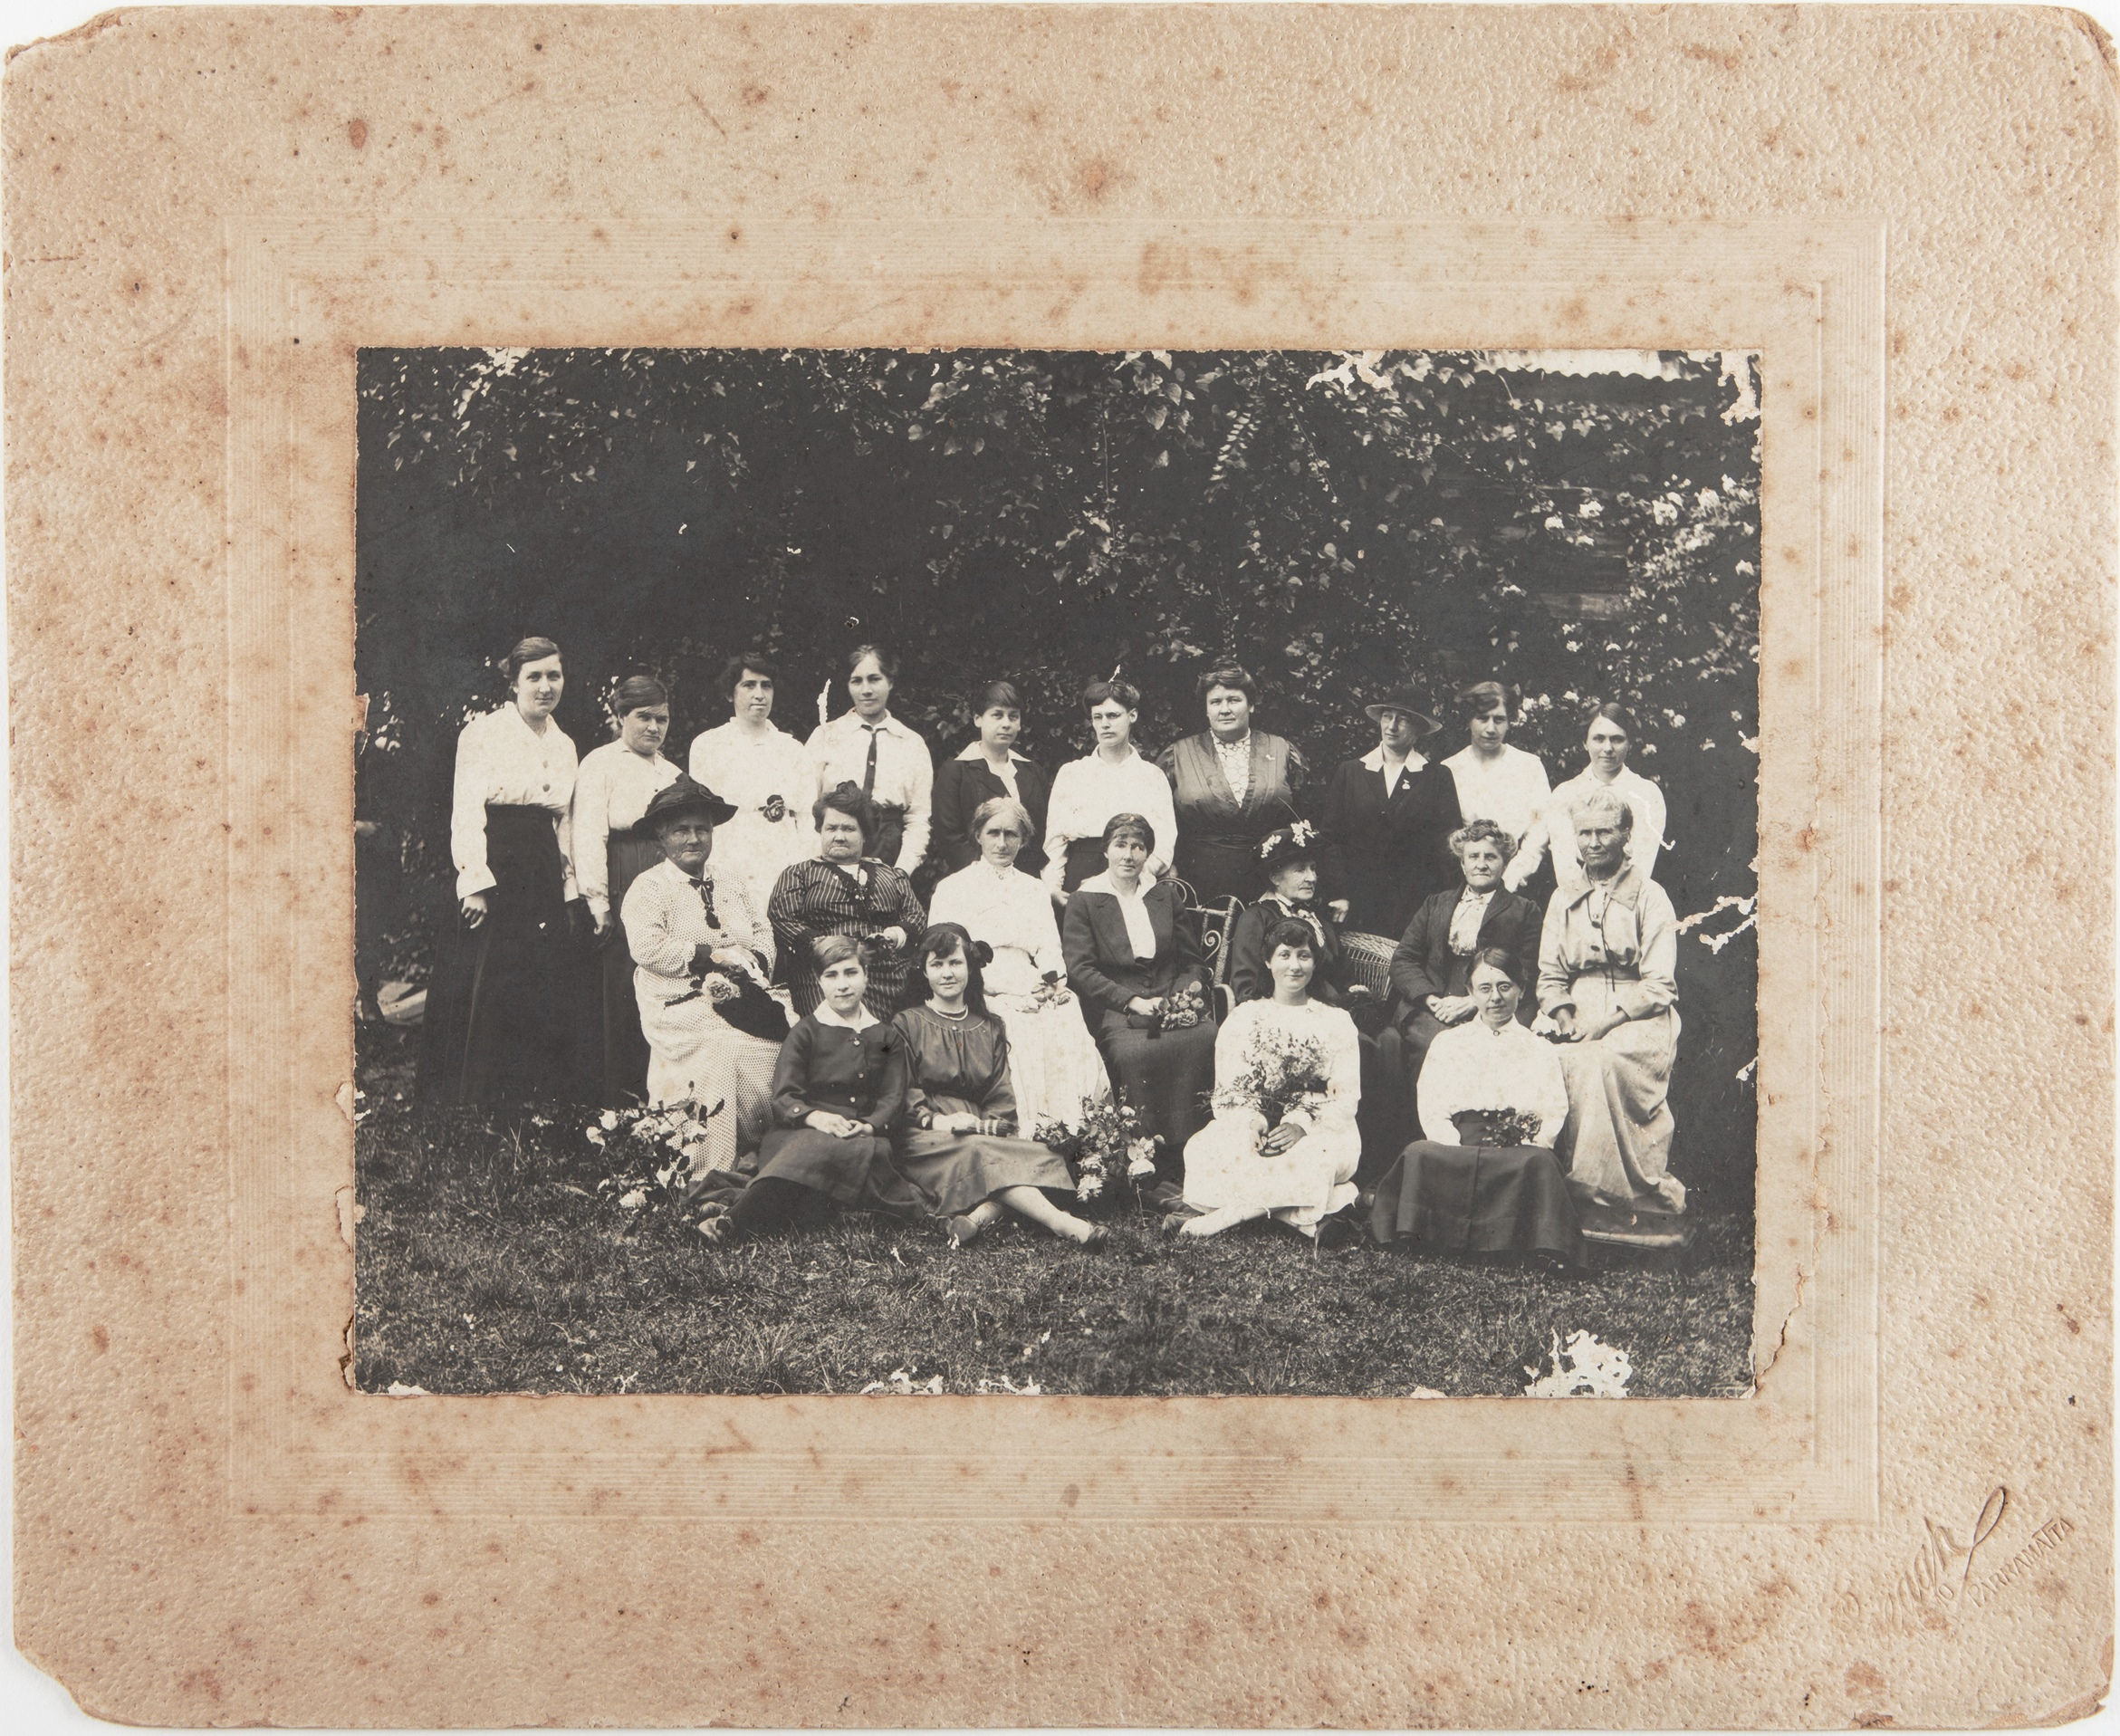 Group photograph of members of the Kellyville-Rouse Hill Red Cross branch, taken probably in 1917 or 1918 / Creagh Photo, Parramatta